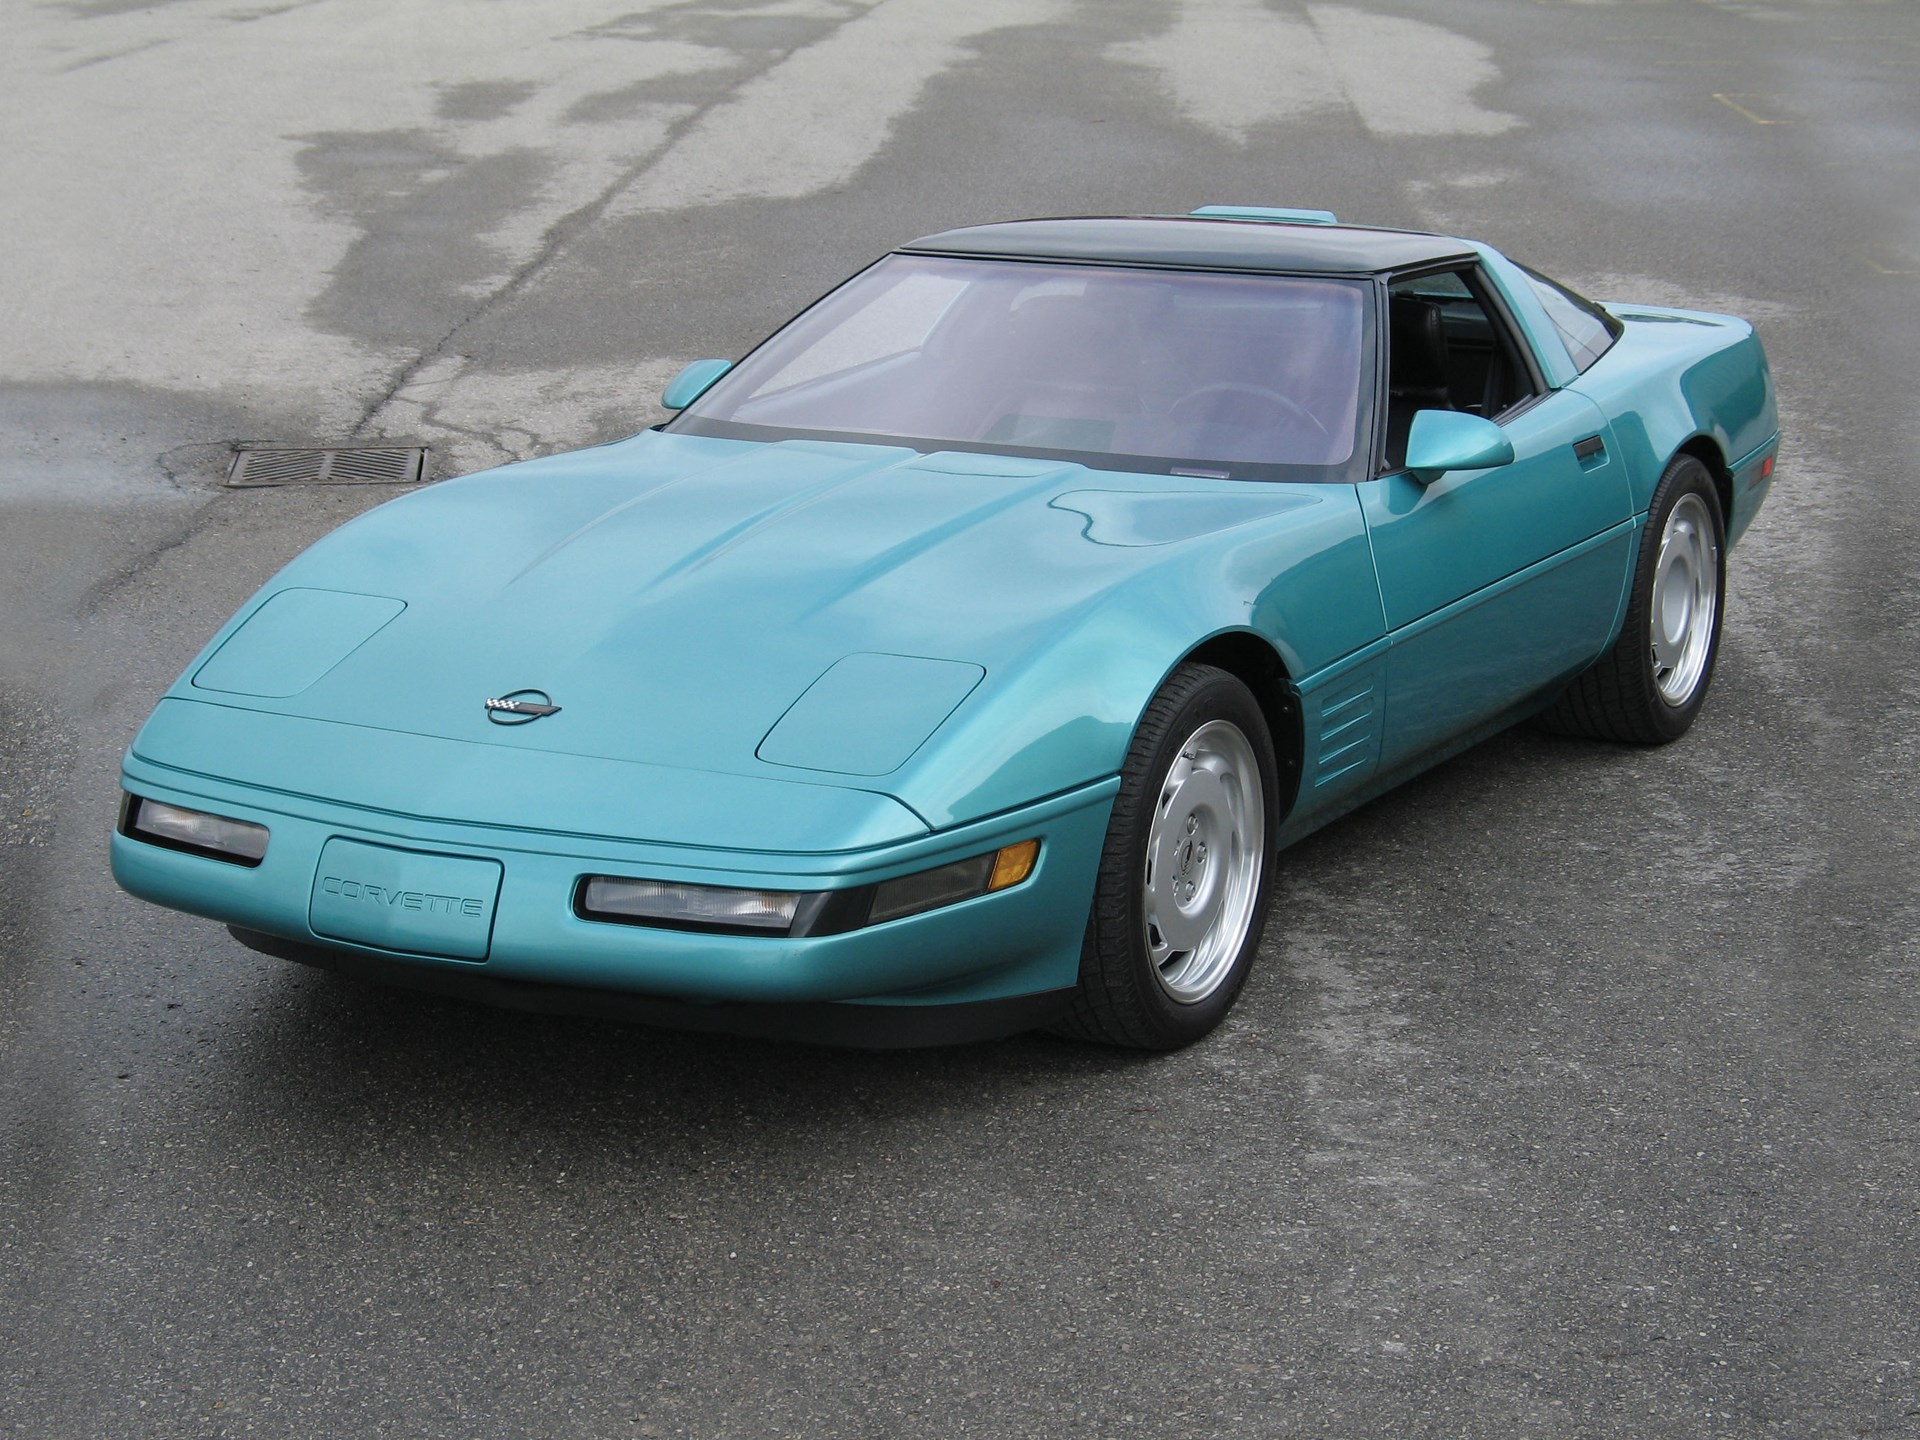 1991 Chevrolet Corvette ZR-1 teal front 3/4